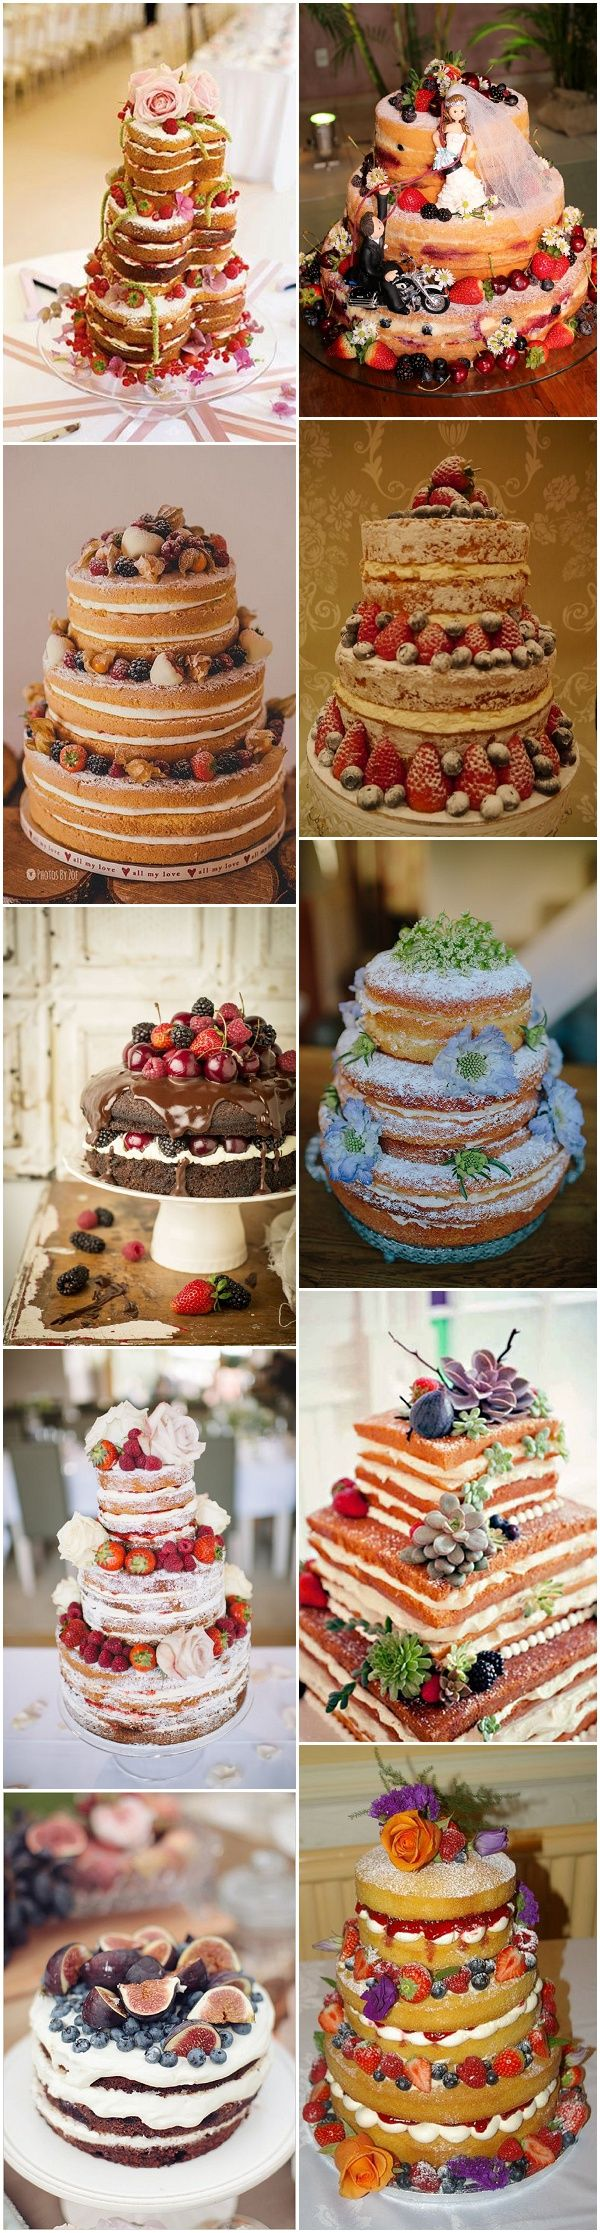 naked wedding cake - What is happening everyone seem to be wanting a cake like this. Is icing a thing of the past? NorahX